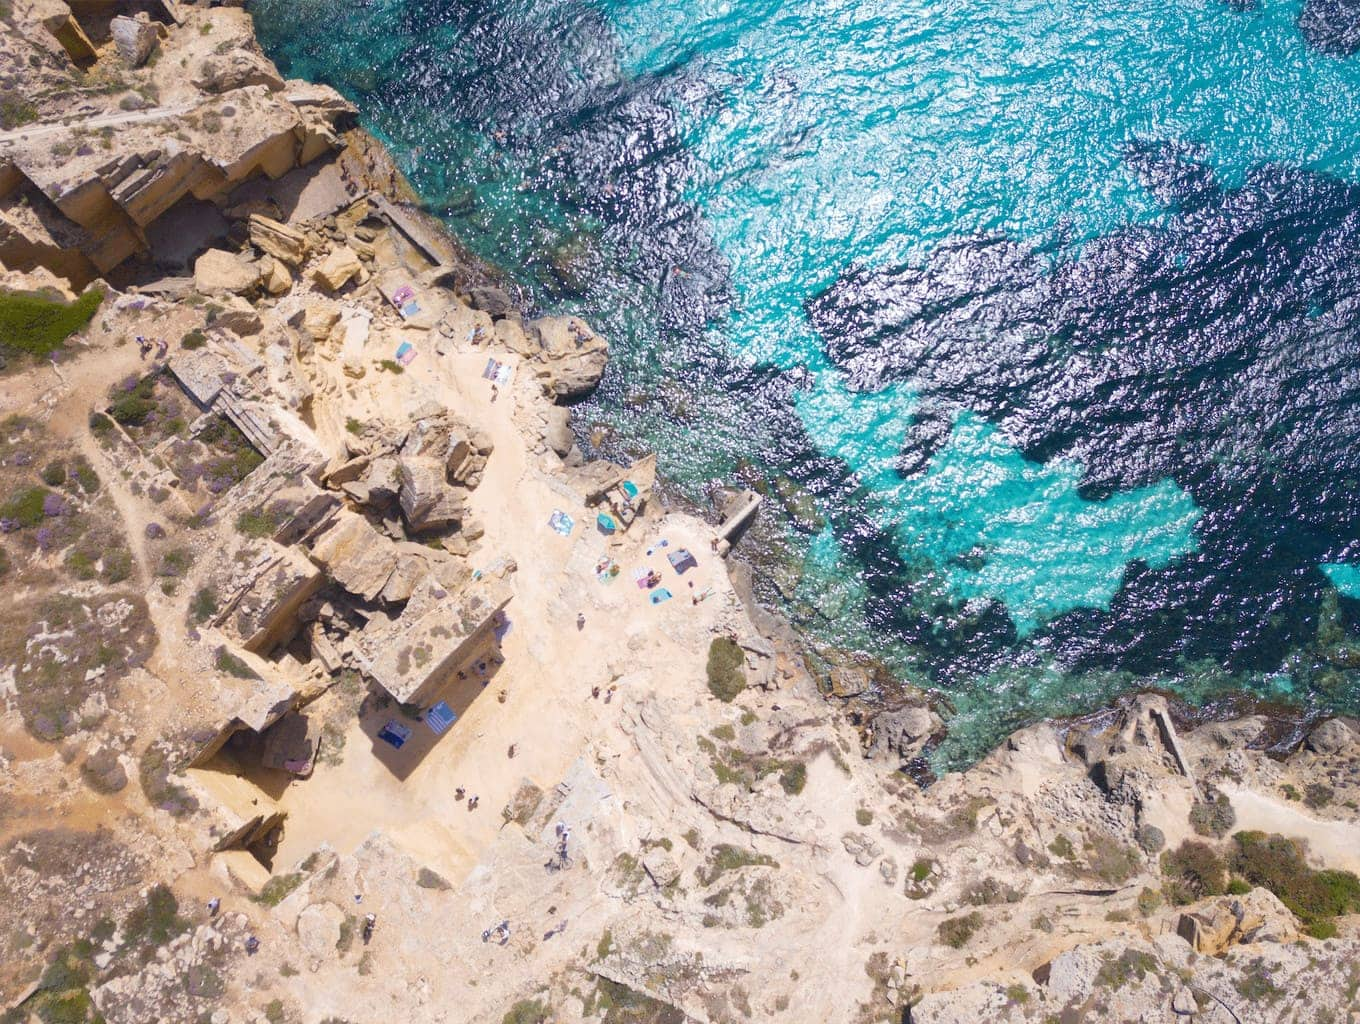 The beaches in Favignana, off Sicily